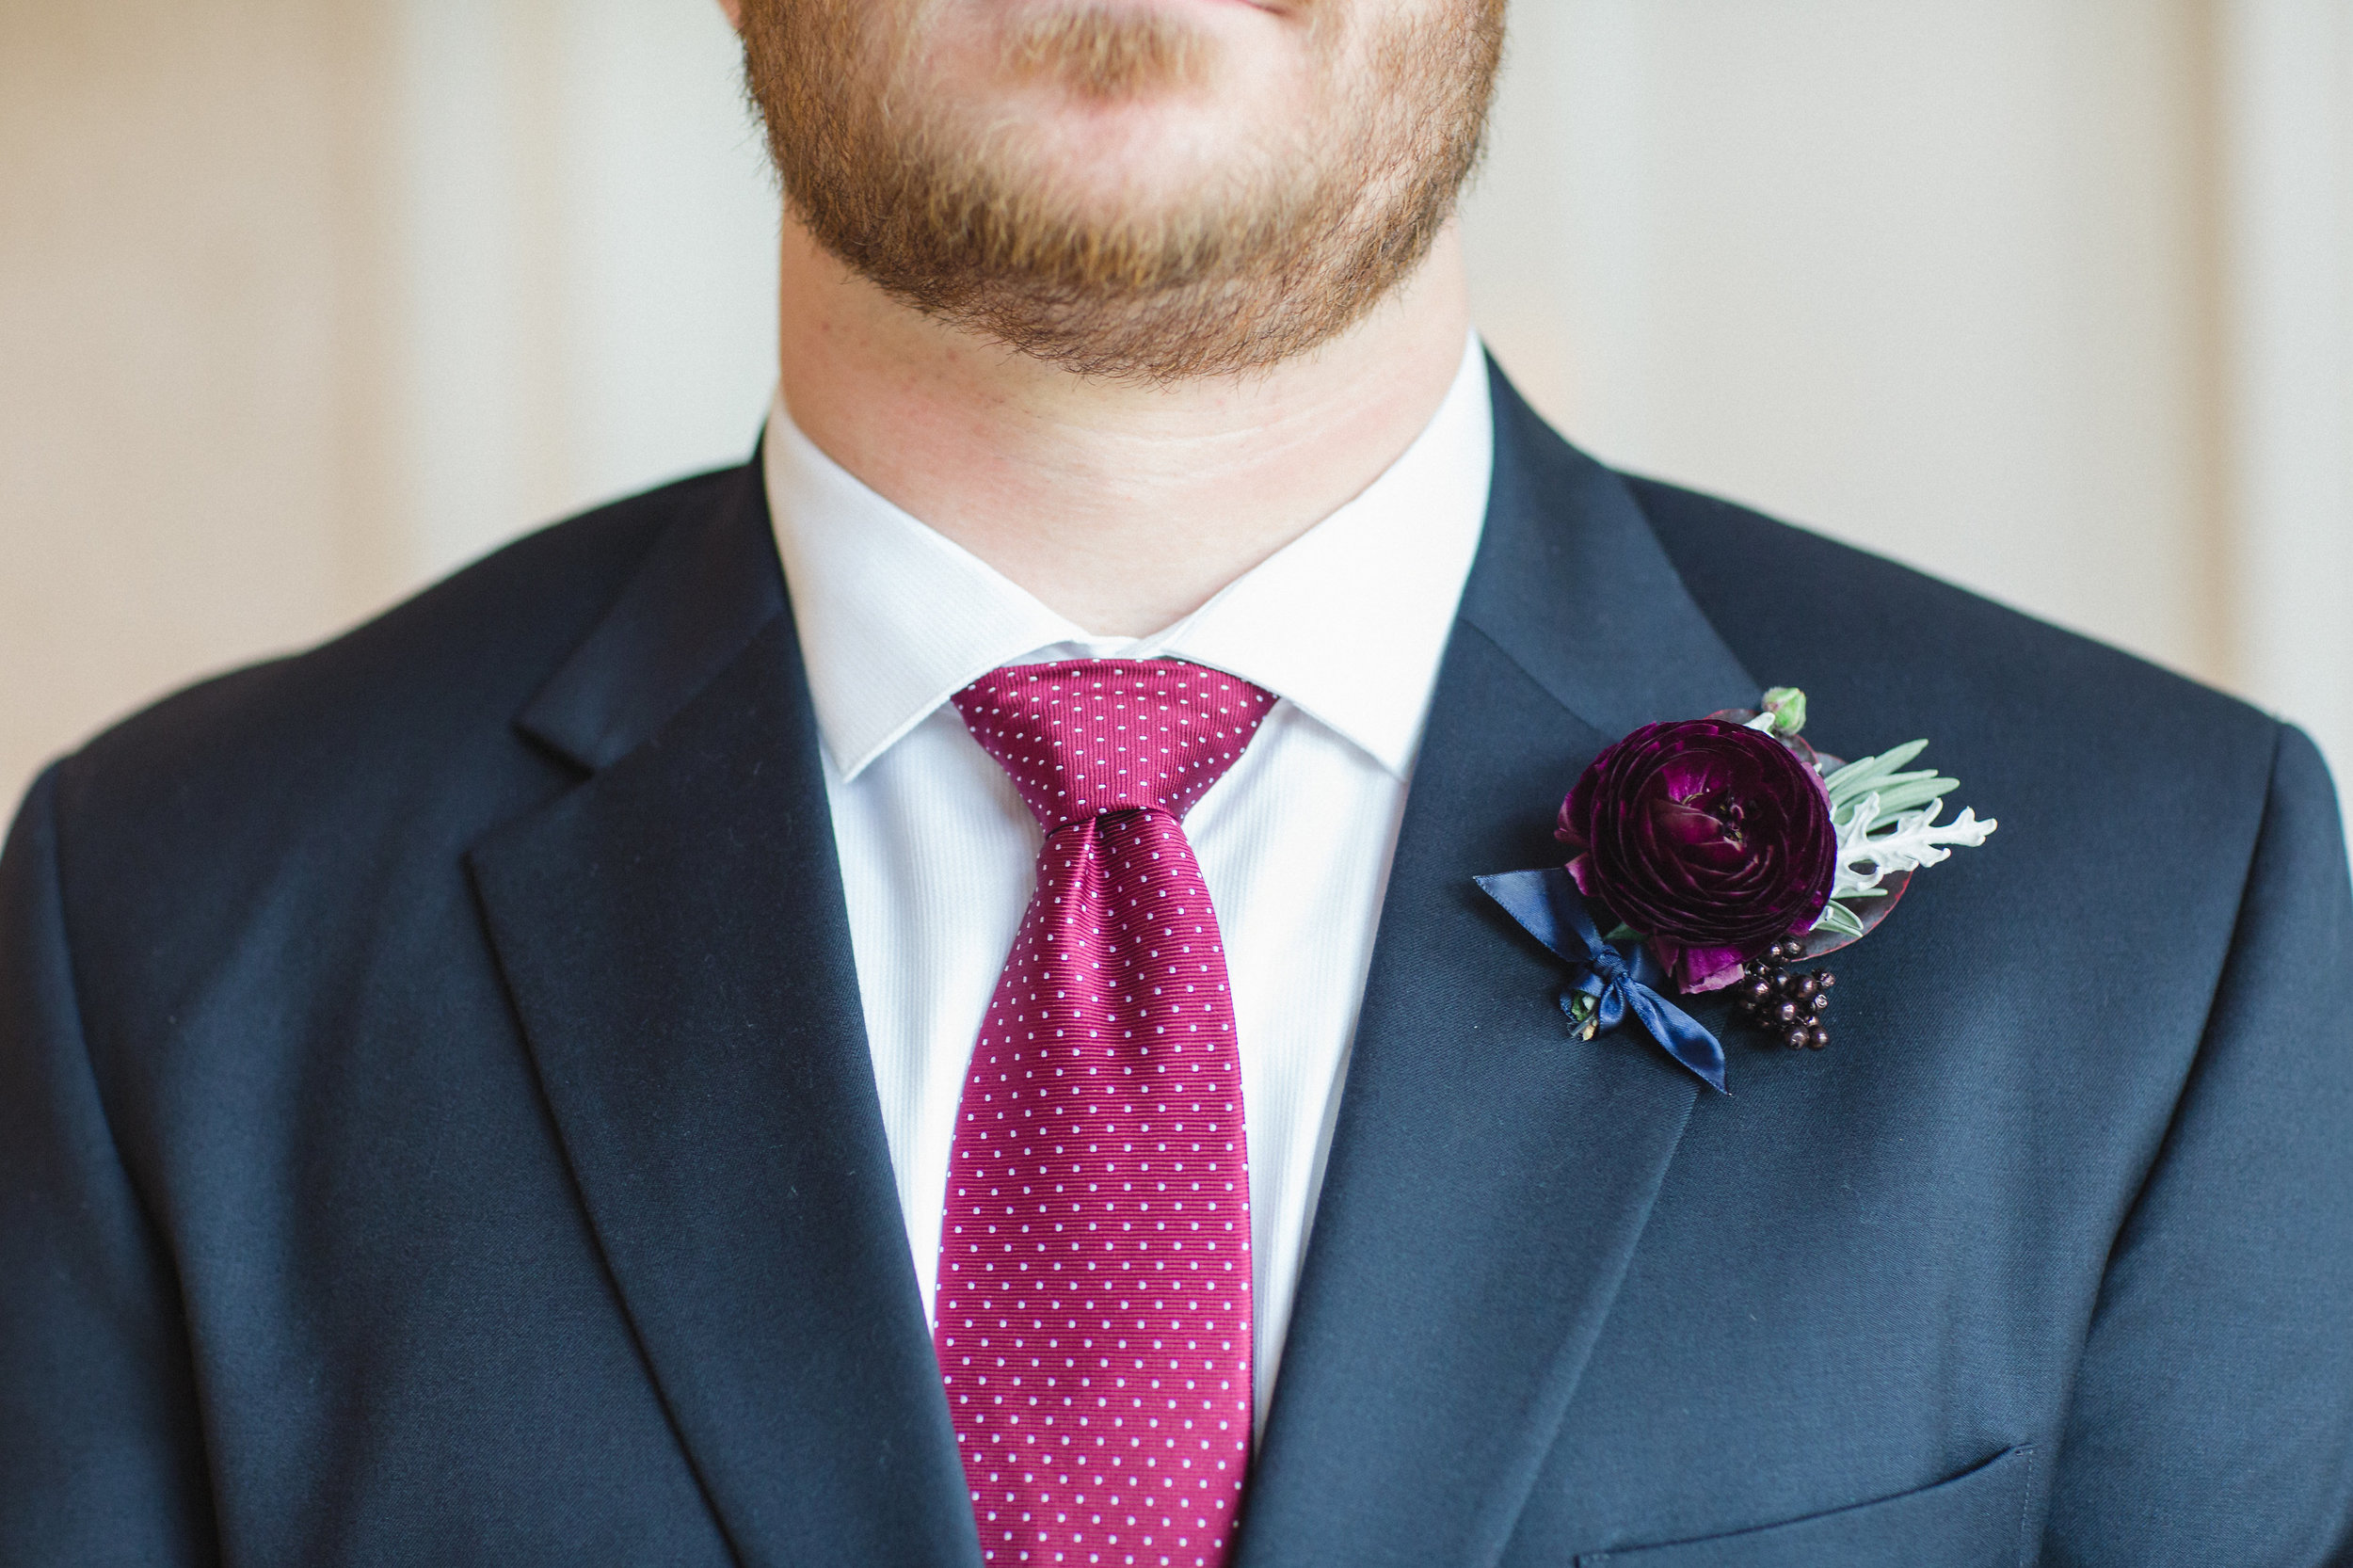 John's boutonniere was made of dusty miller, silver dollar eucalyptus, painted berries, and a ranunculus.